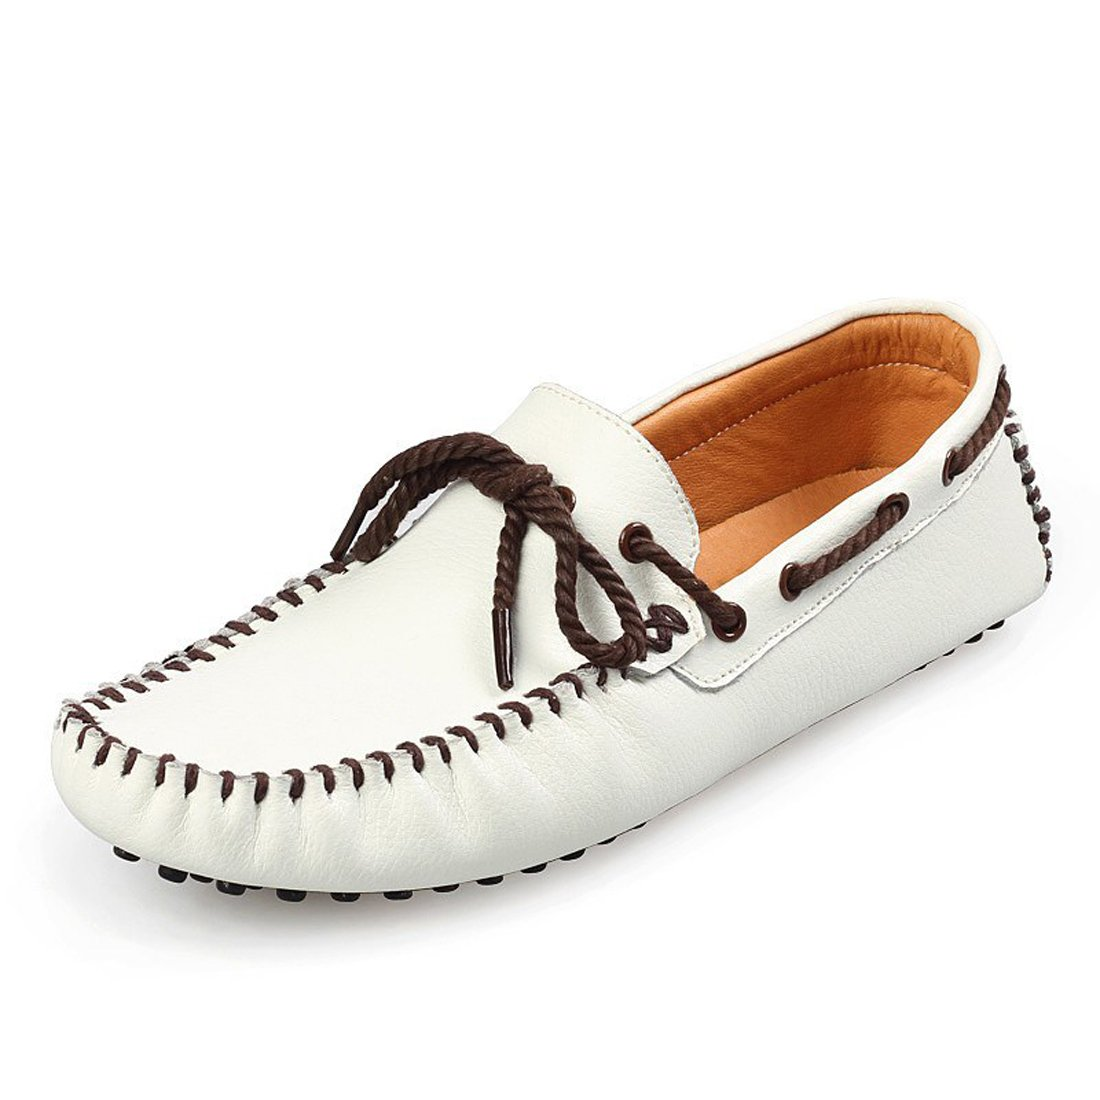 suzanne vega Mens Genuine Leather Casual Leisure Oxfords No-Slip Loafer Driving Moccasins Shoes